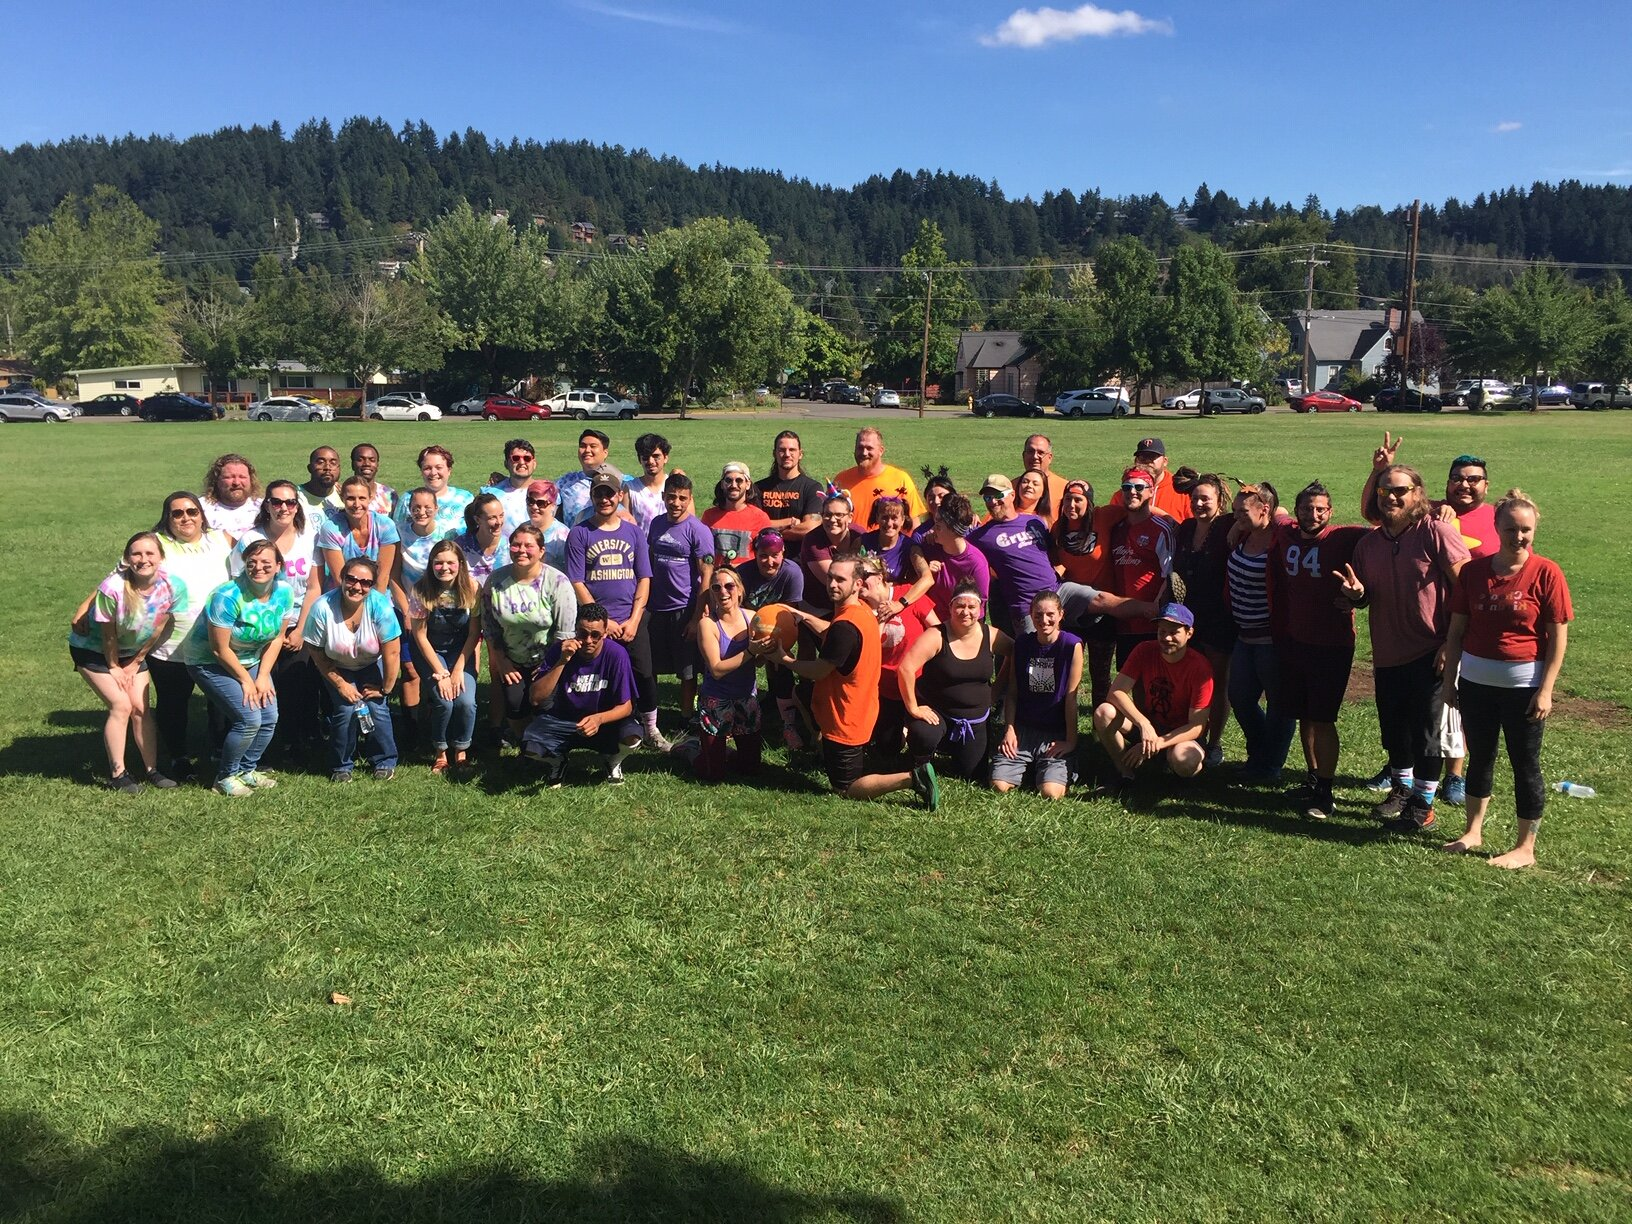 This was the a brief respite during a day of nearly constant trash talking between programs as they gathered for a group photo with RCC, Stepping Stone, Pathways and PRD teams represented.